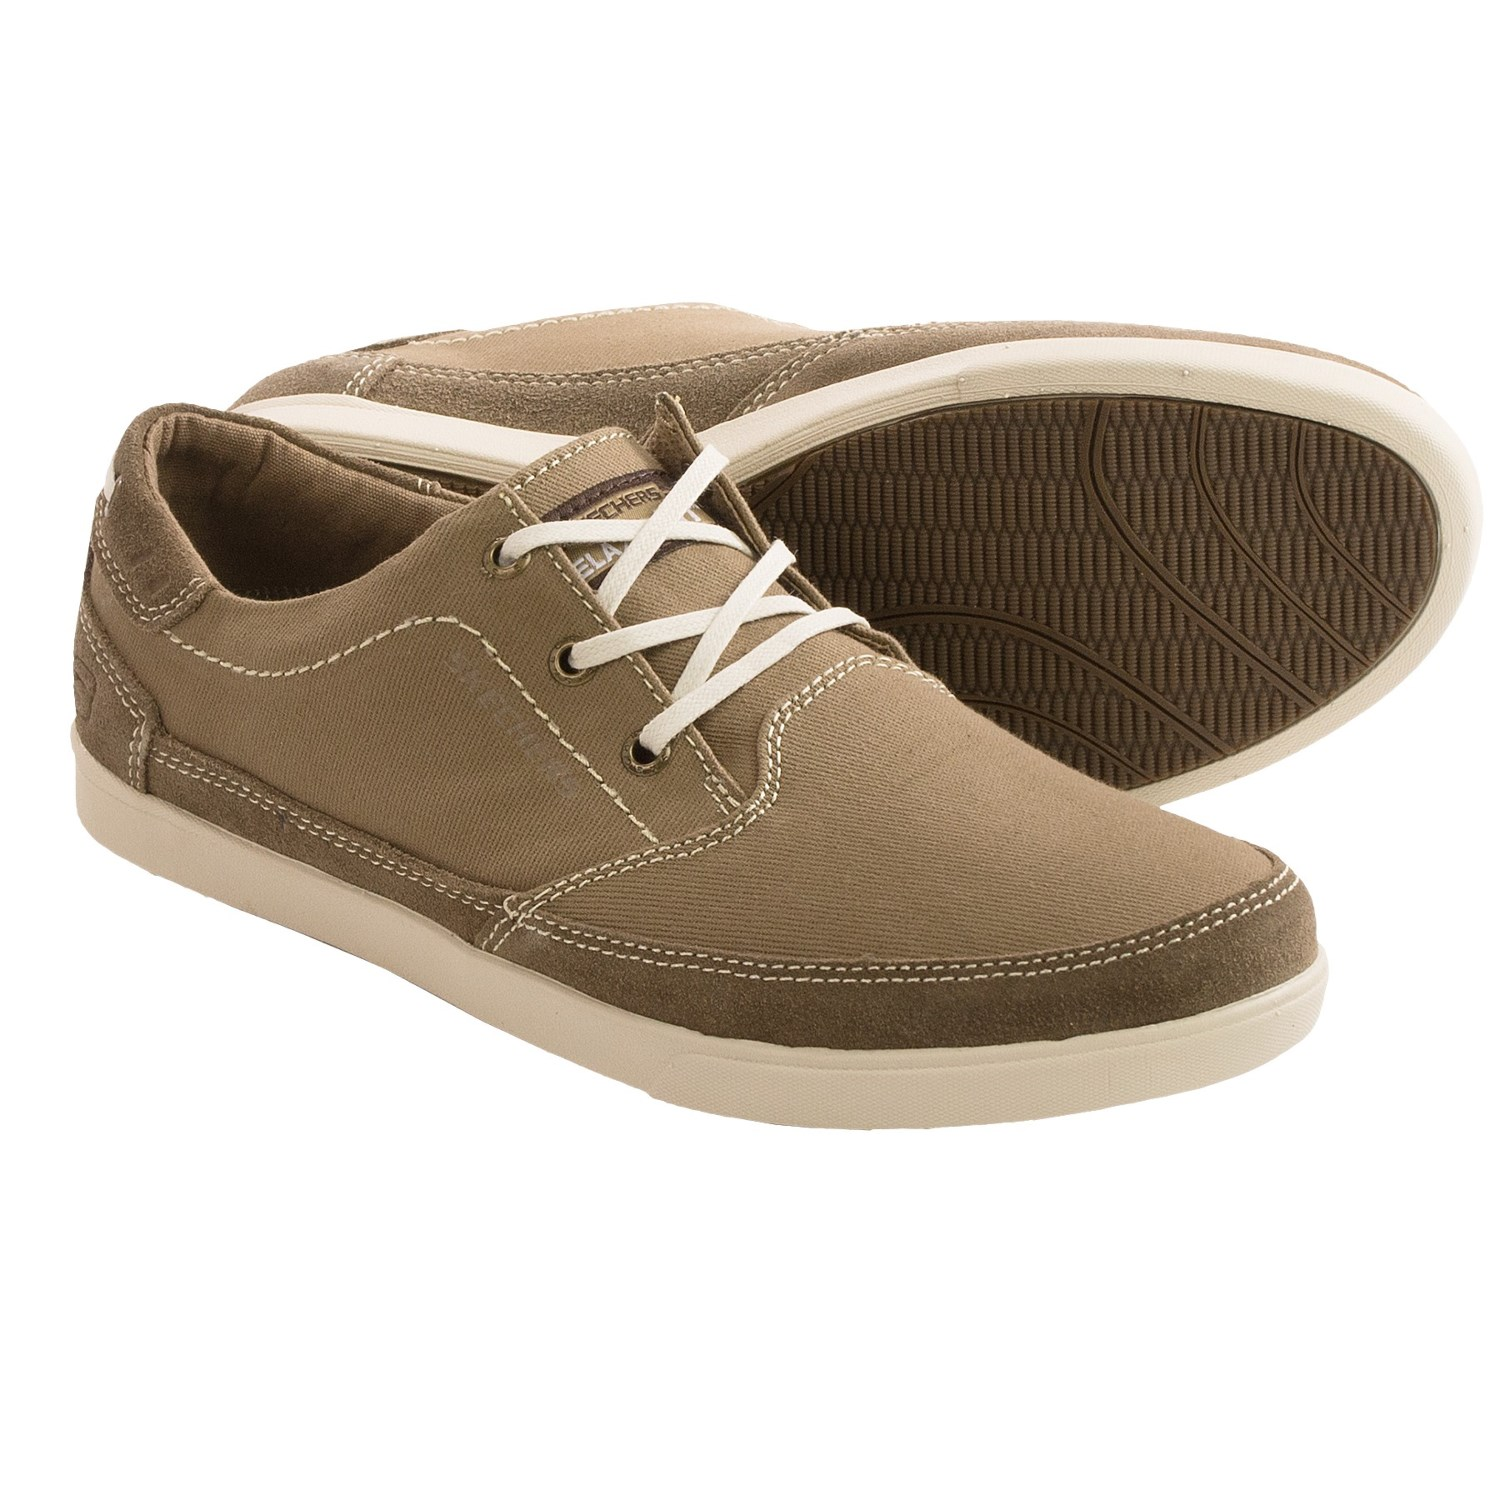 skechers cardova shoes canvas for save 38